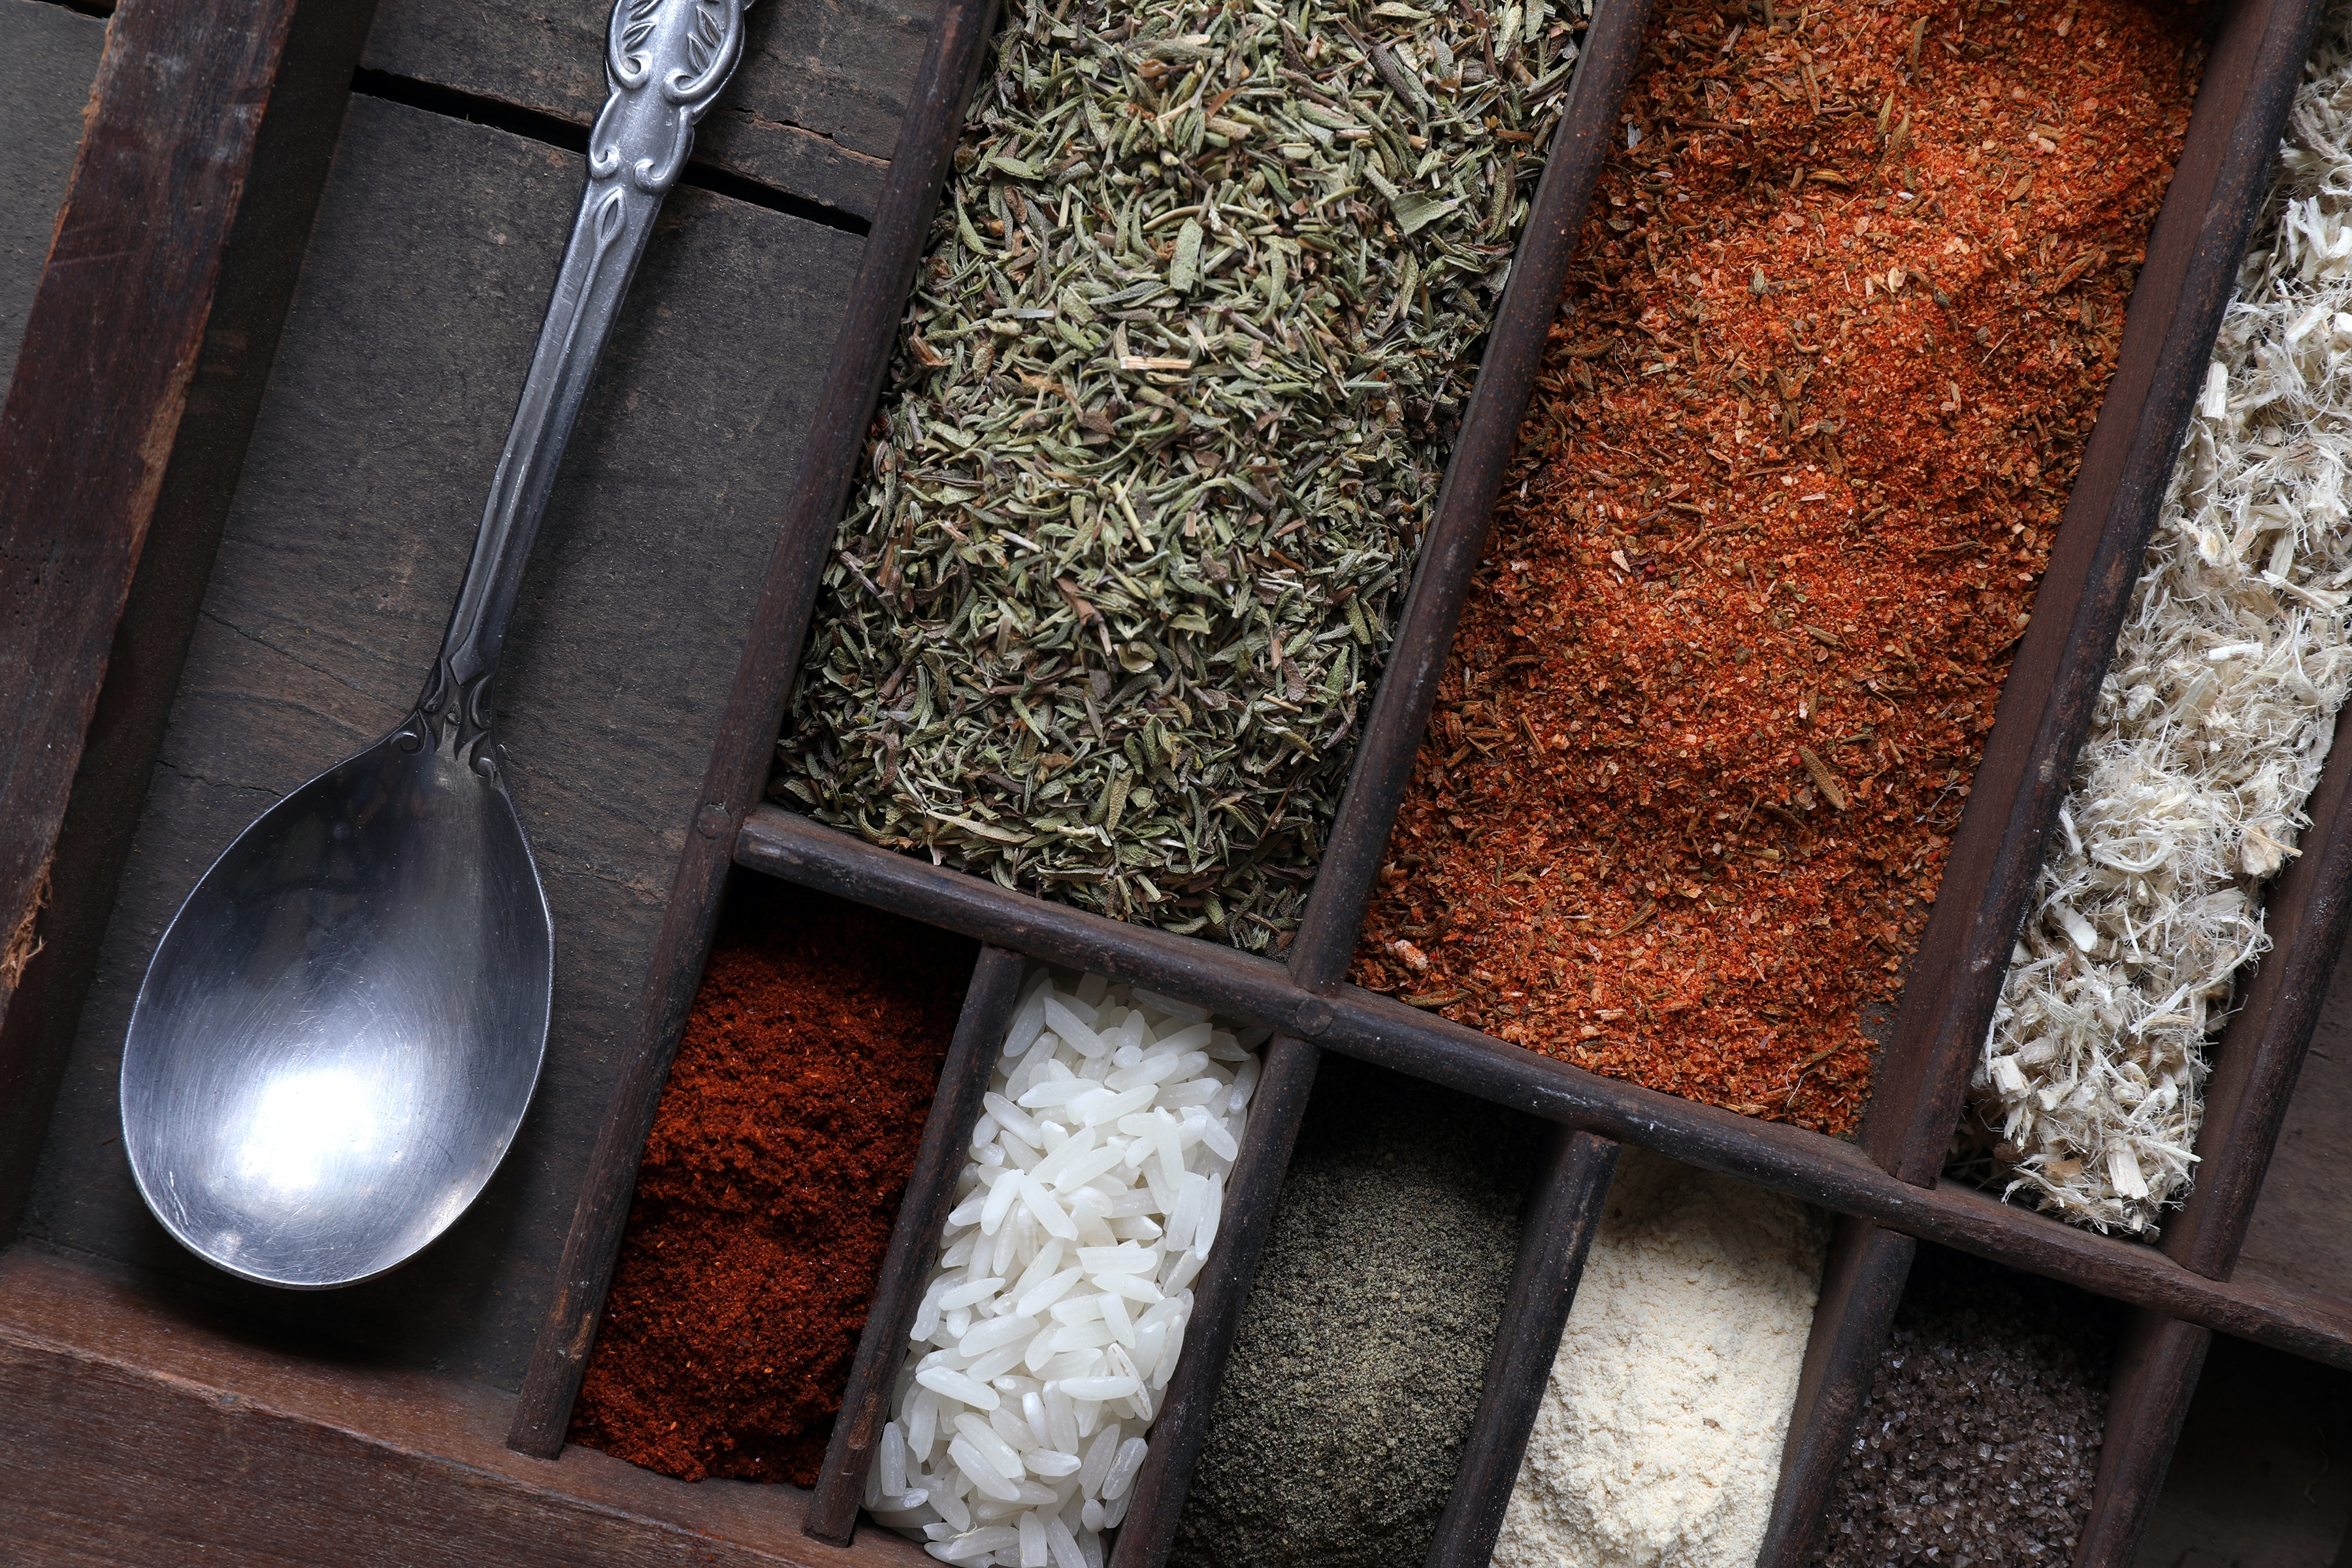 Spices and Ingredients used to make gumbo sitting in organizer with spoon